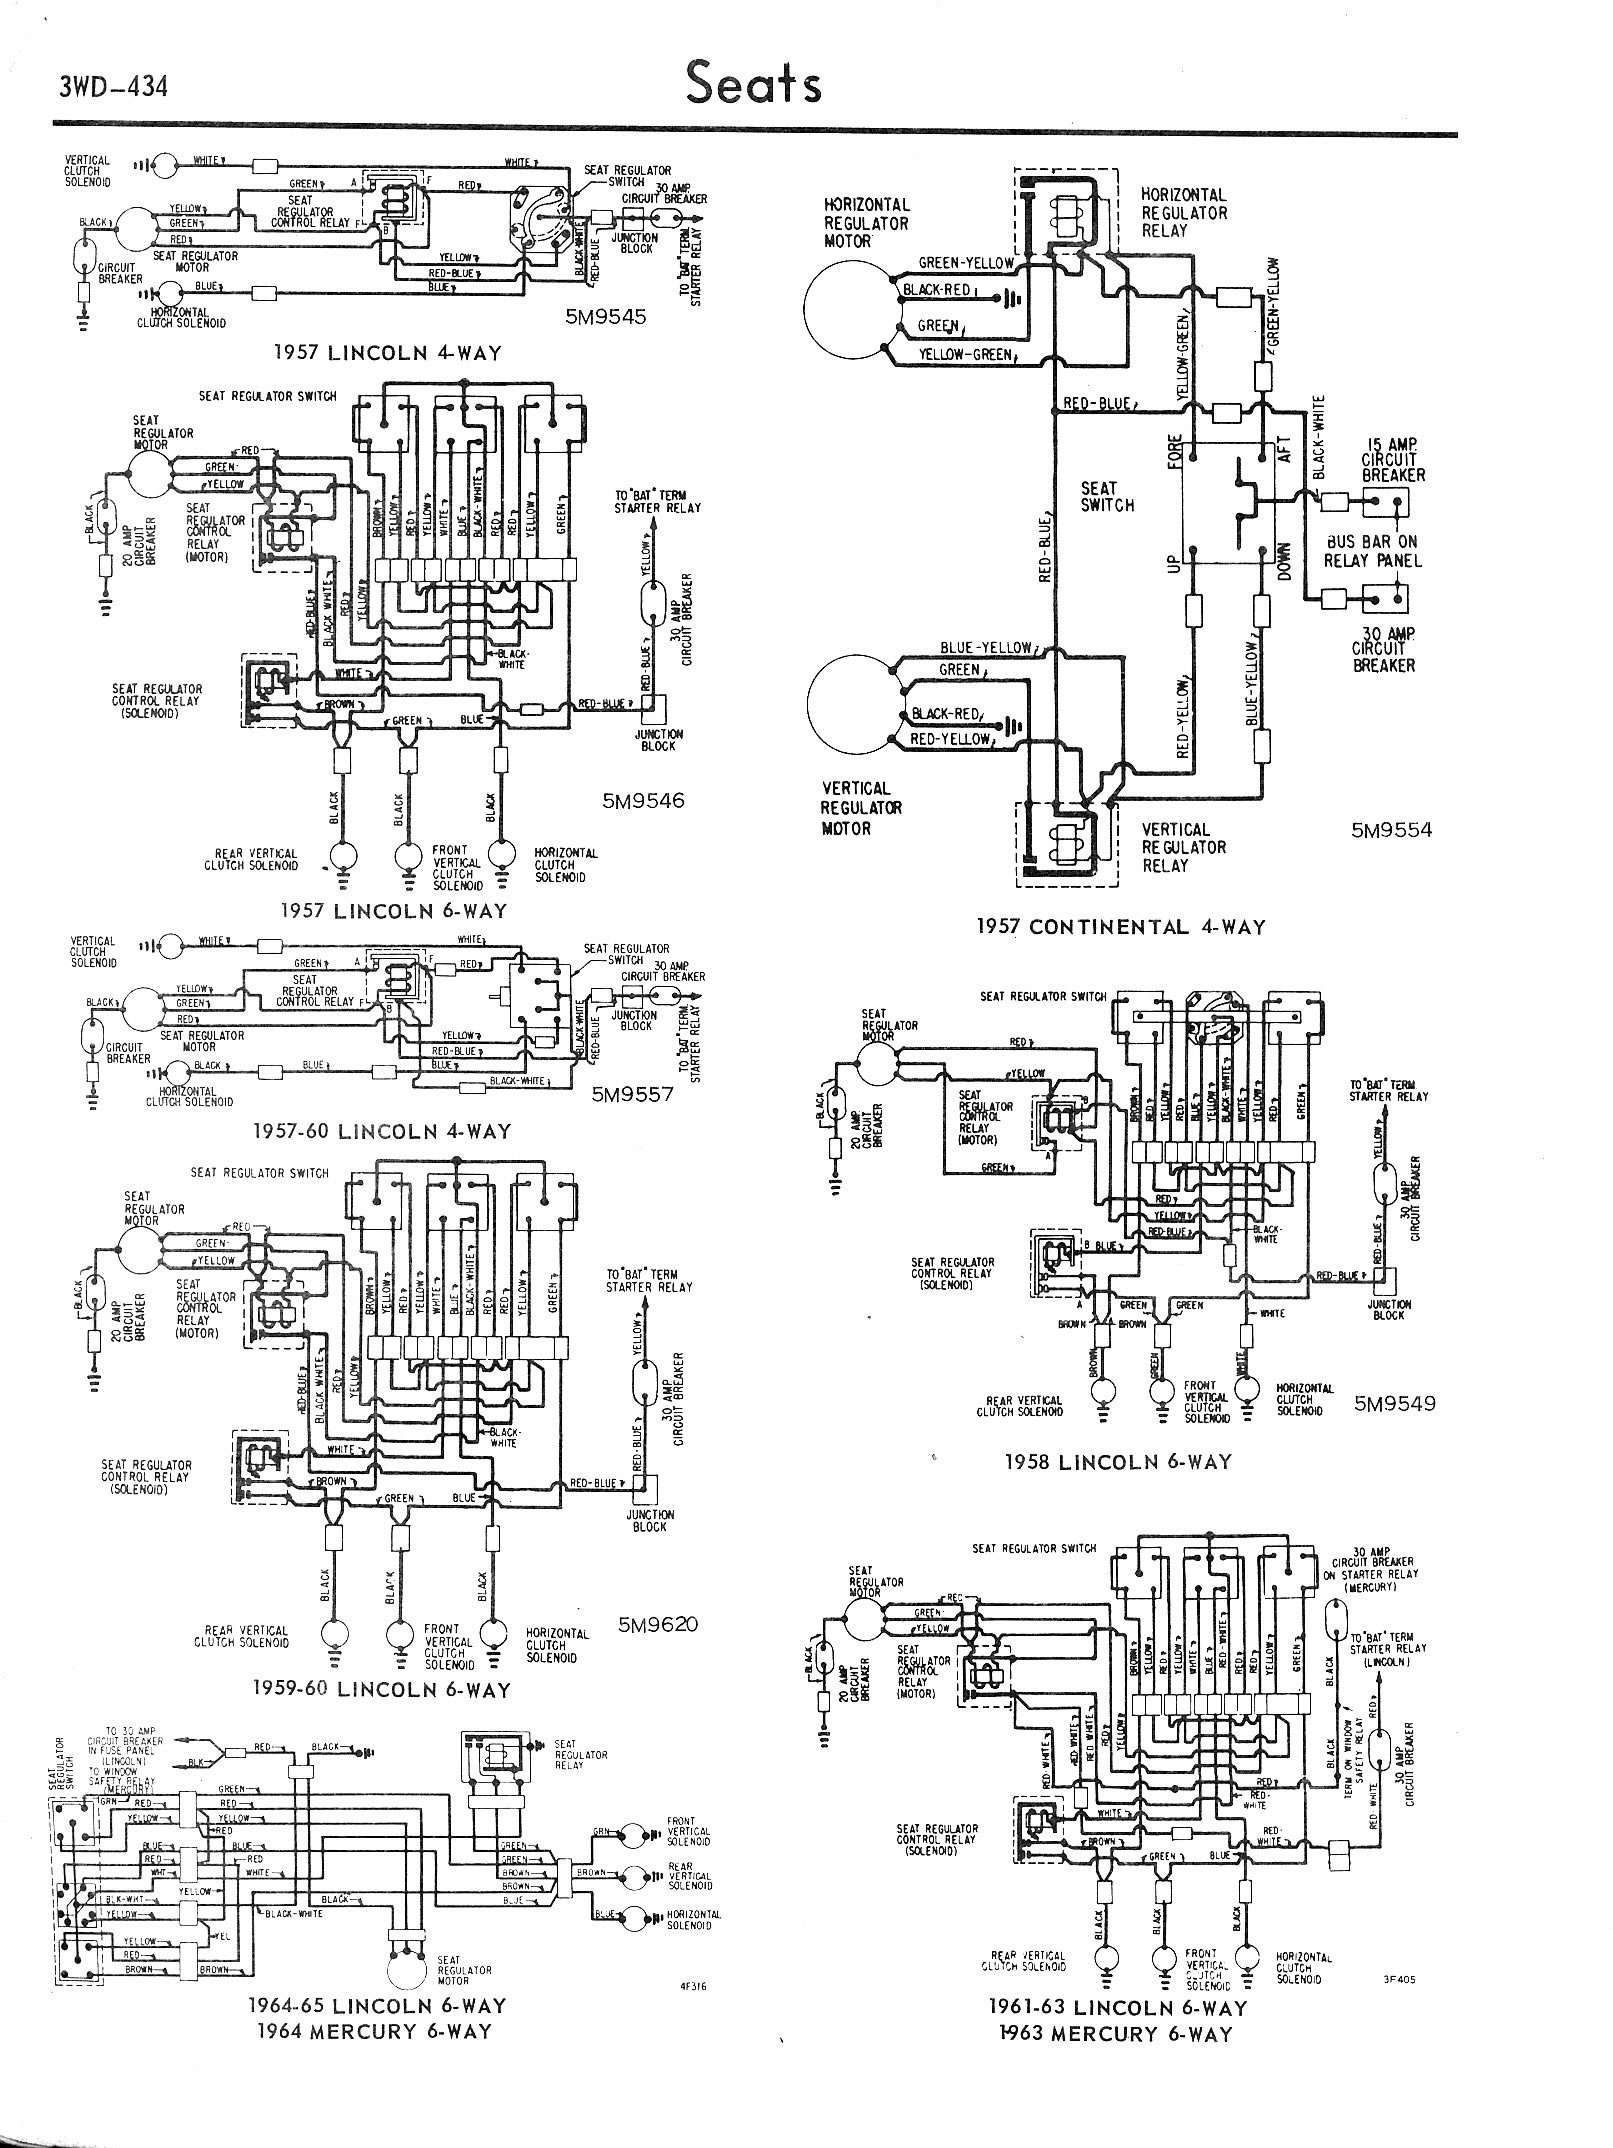 ford 3g alternator wiring diagram    ford    diagrams     ford    diagrams